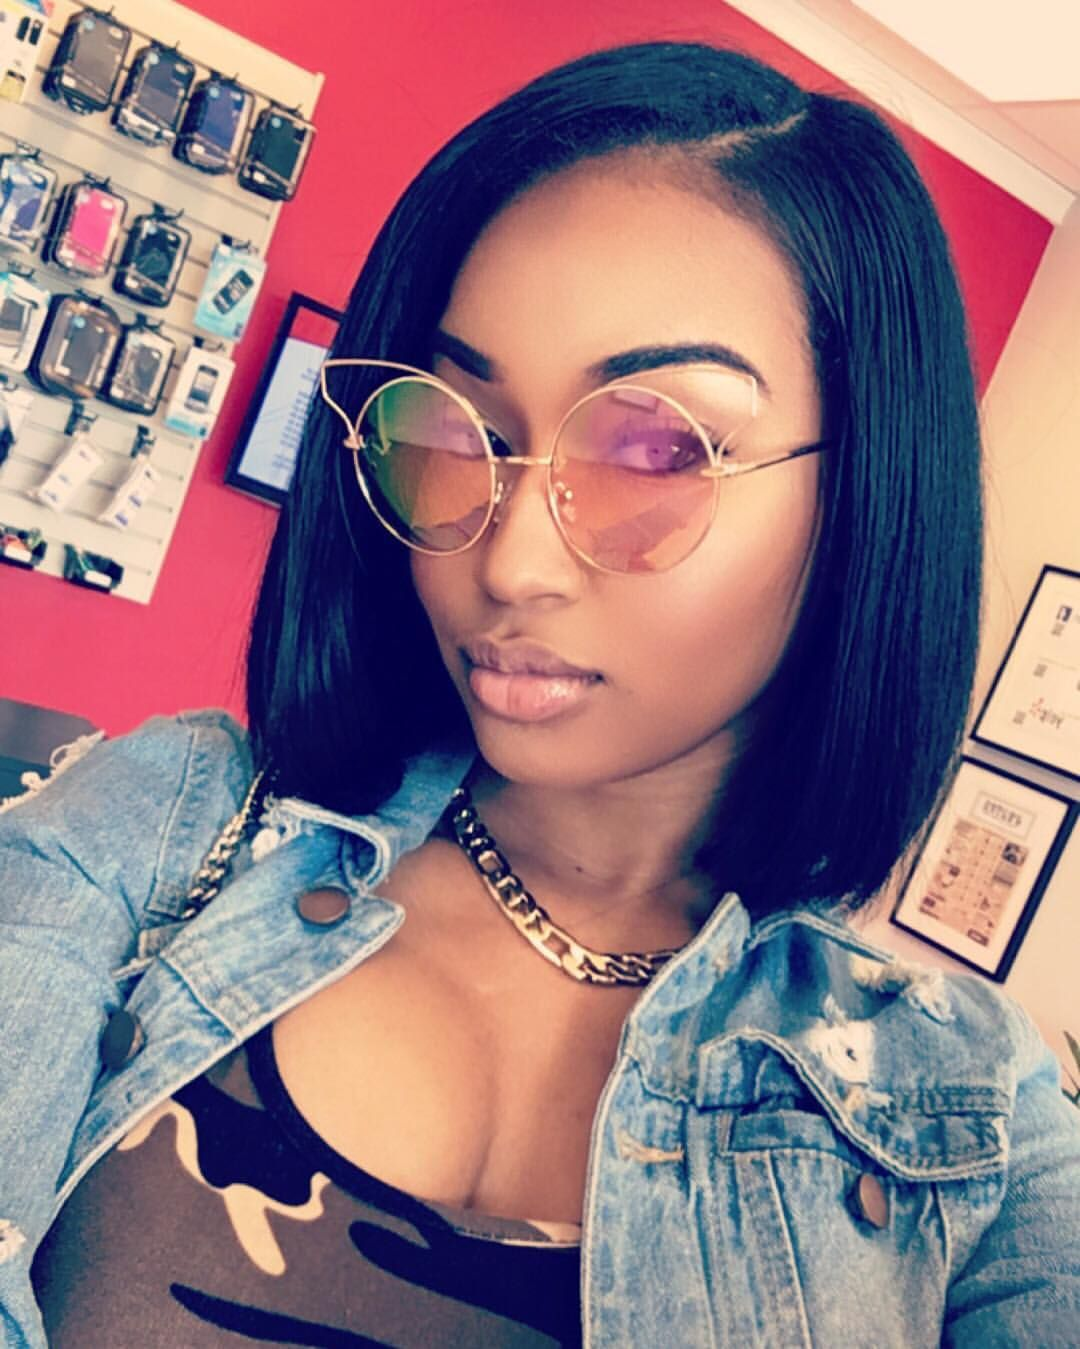 pindaquenna moore on hair | pinterest | bobs, instagram and hair